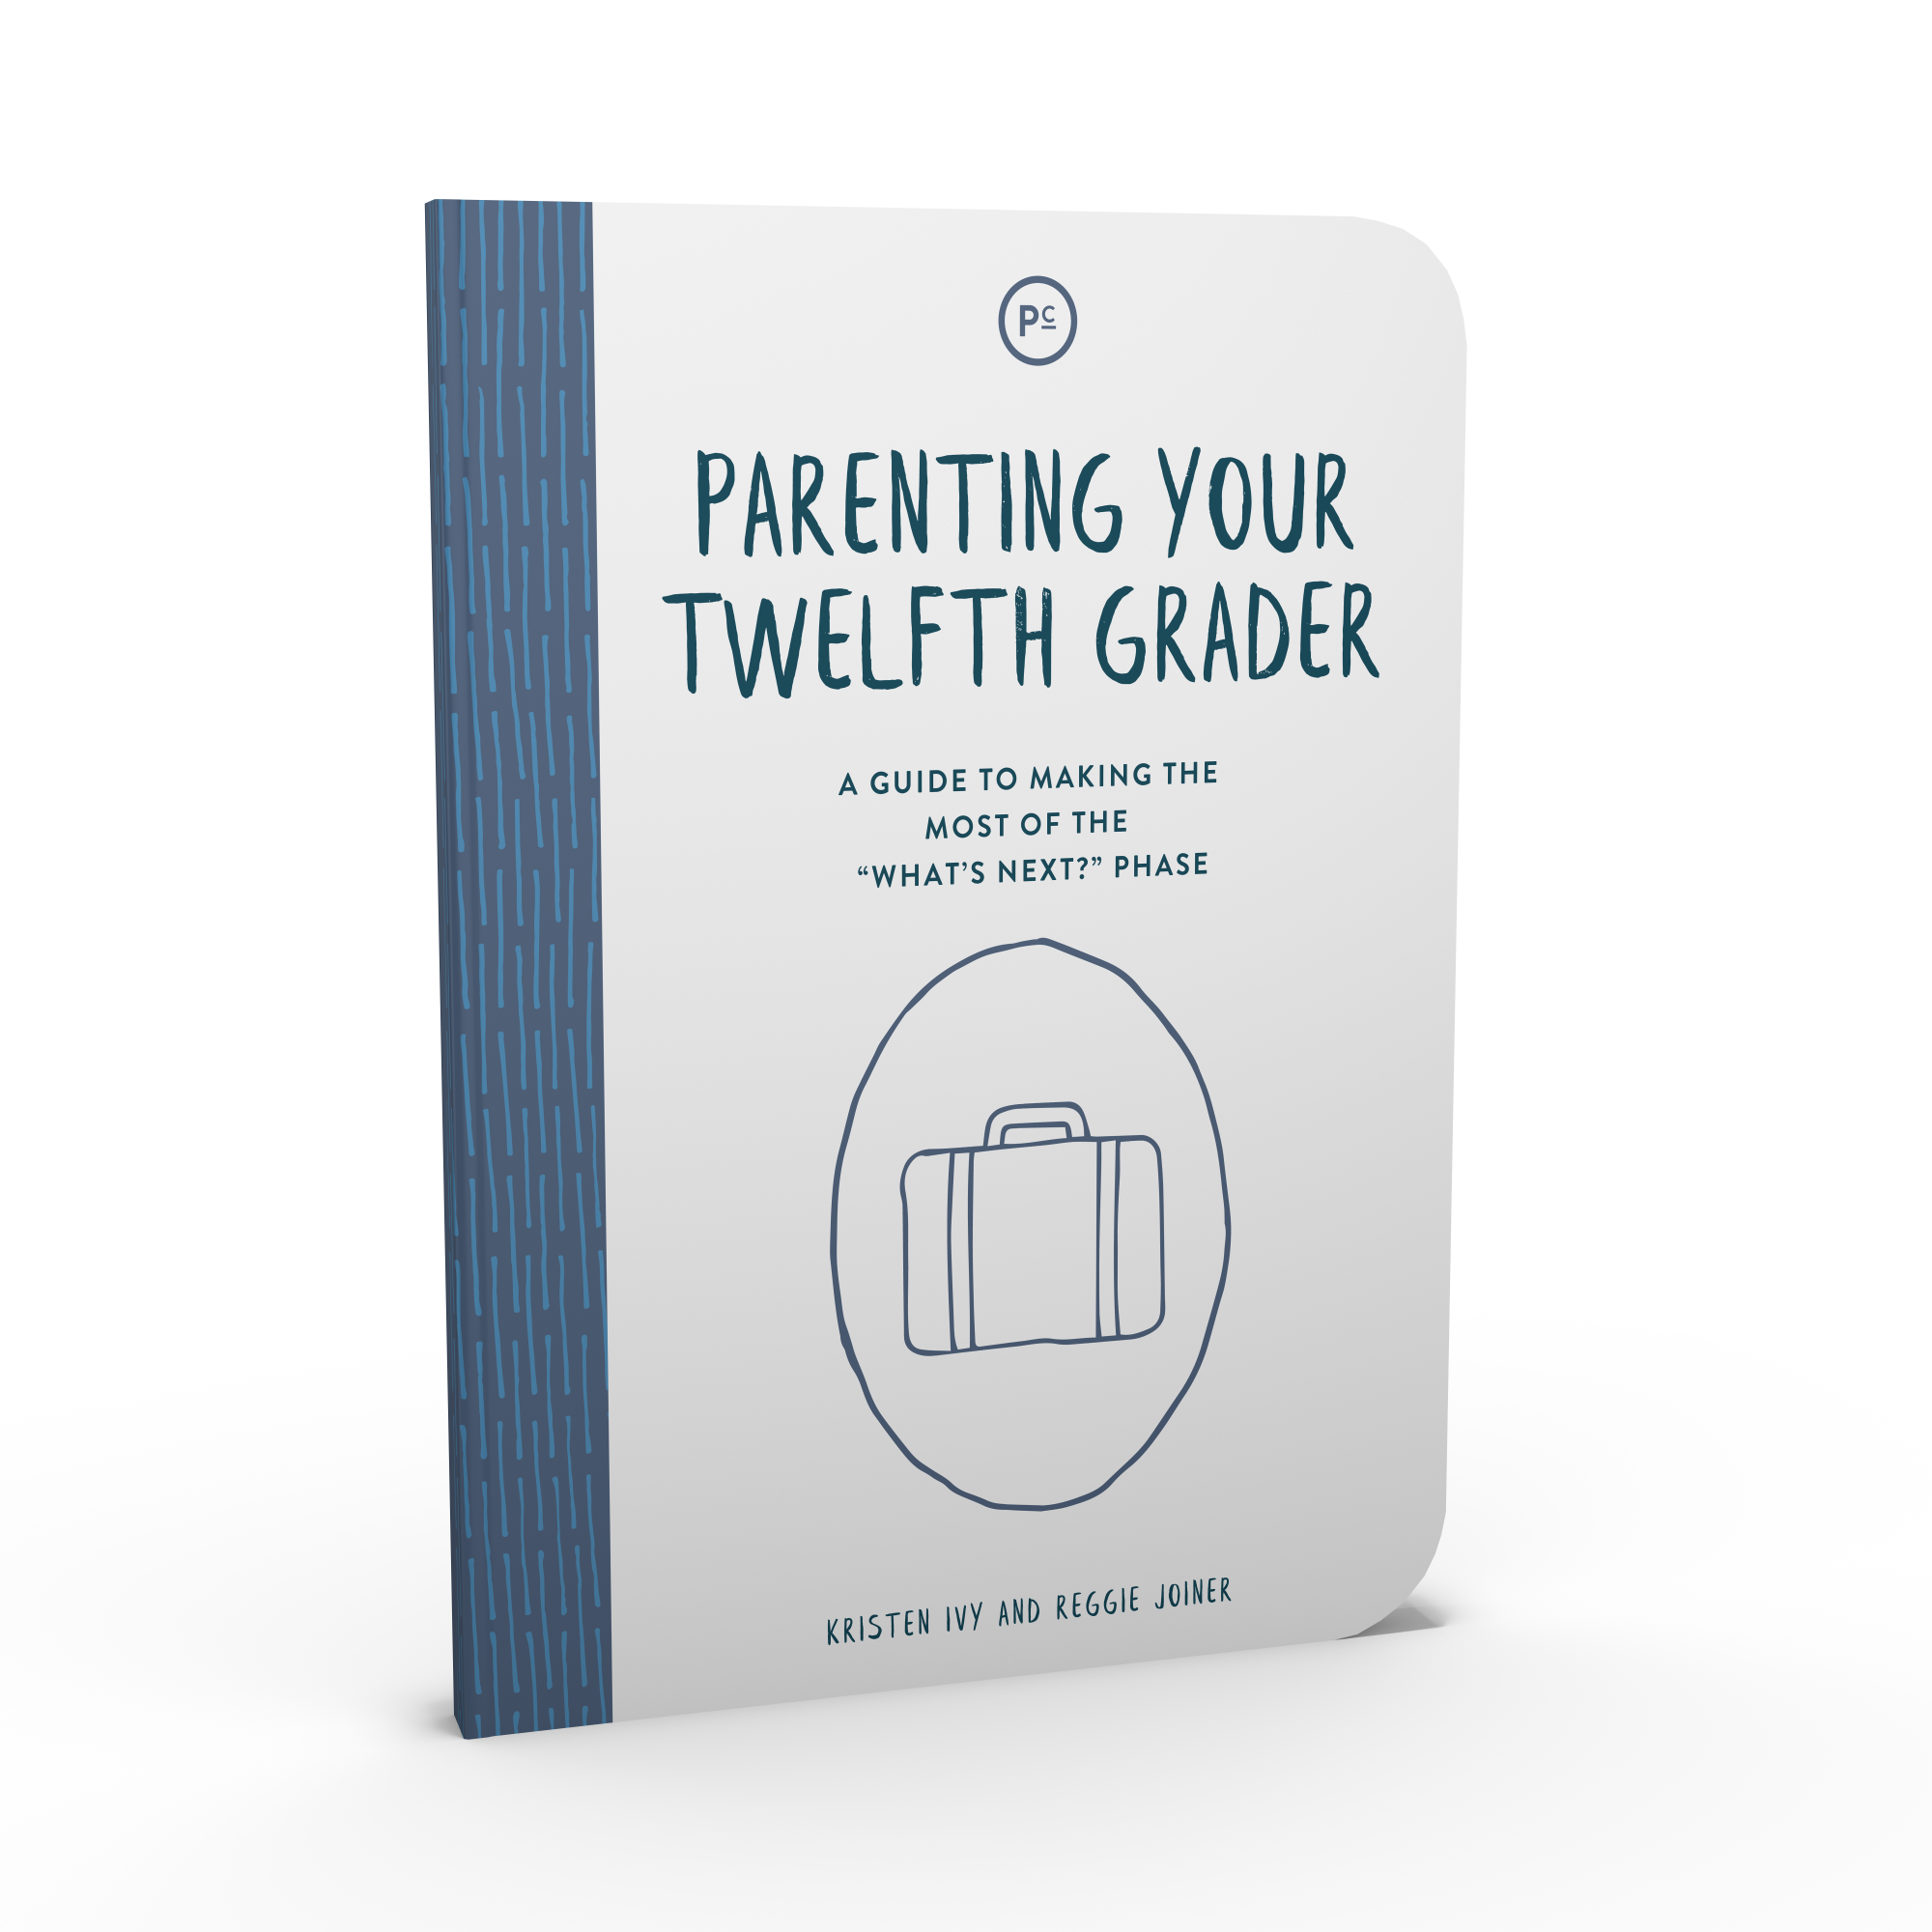 Parenting Your Twelfth Grader